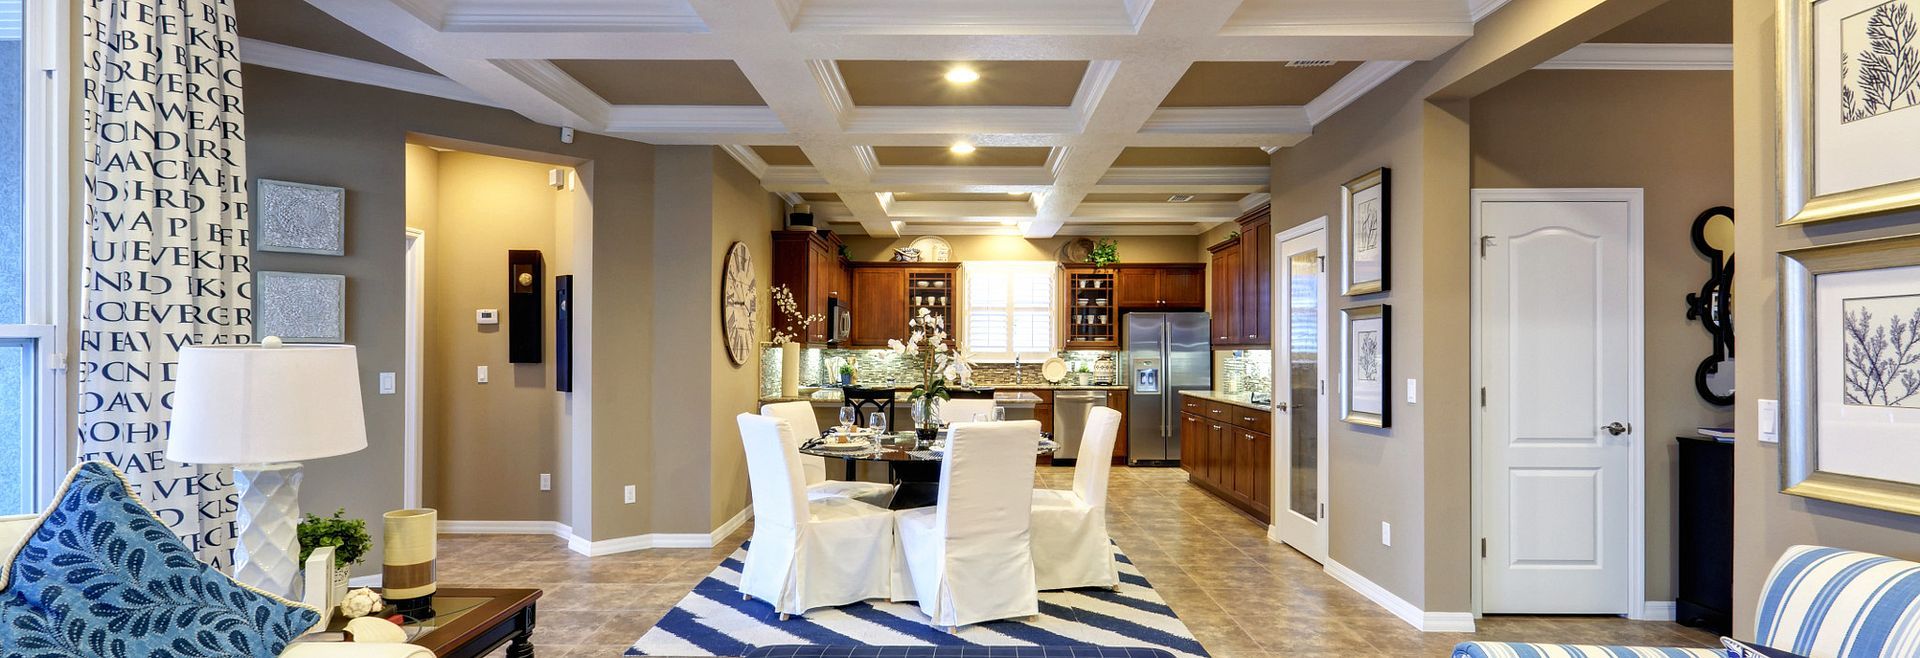 Heather Plan with Large Great Room and Coffered Ceiling